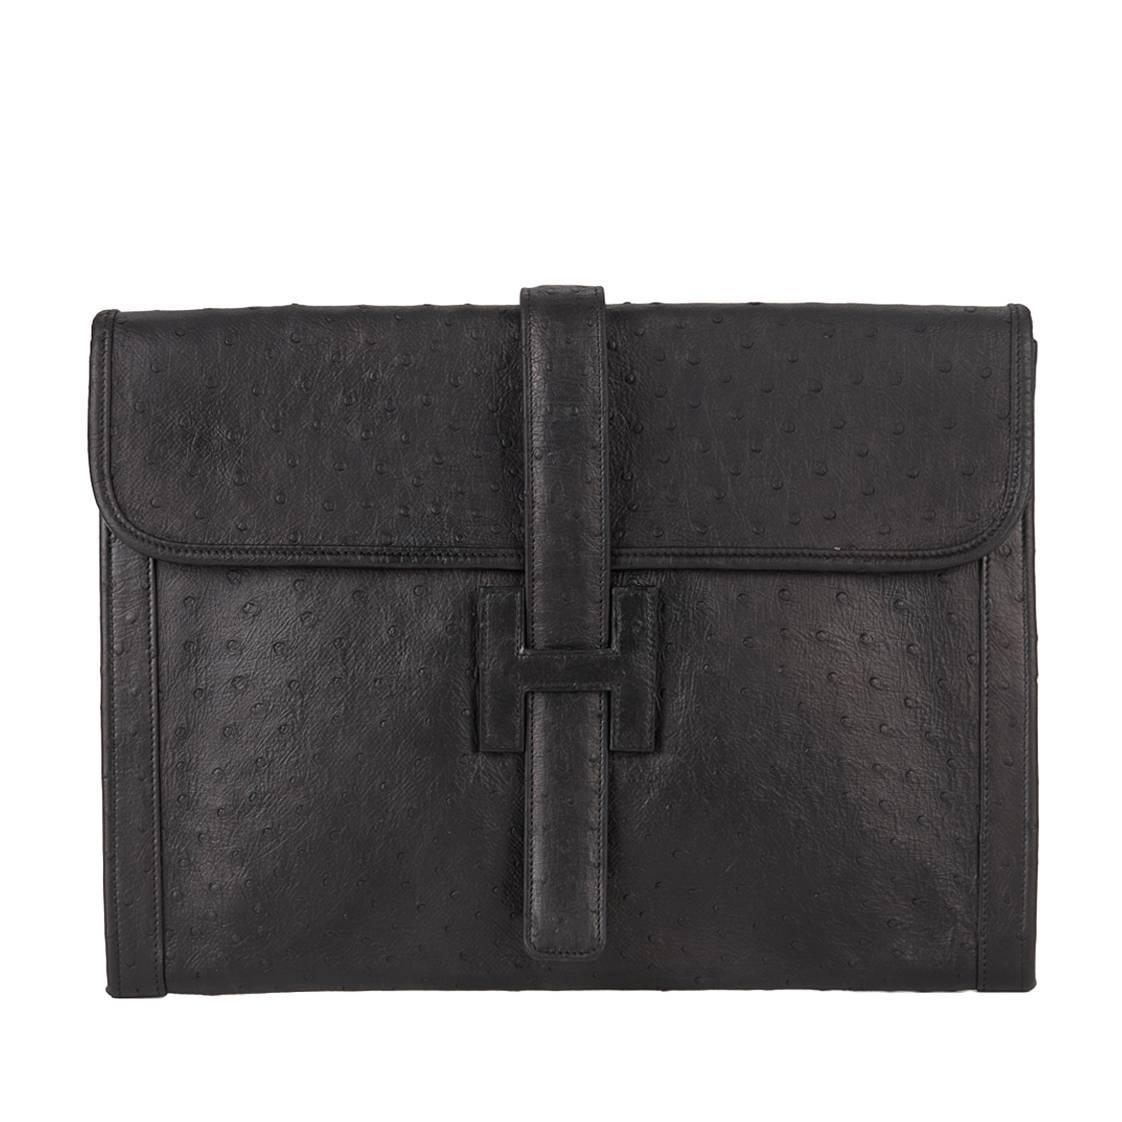 cheap croc look alikes - Vintage Herm��s Clutches - 150 For Sale at 1stdibs - Page 2